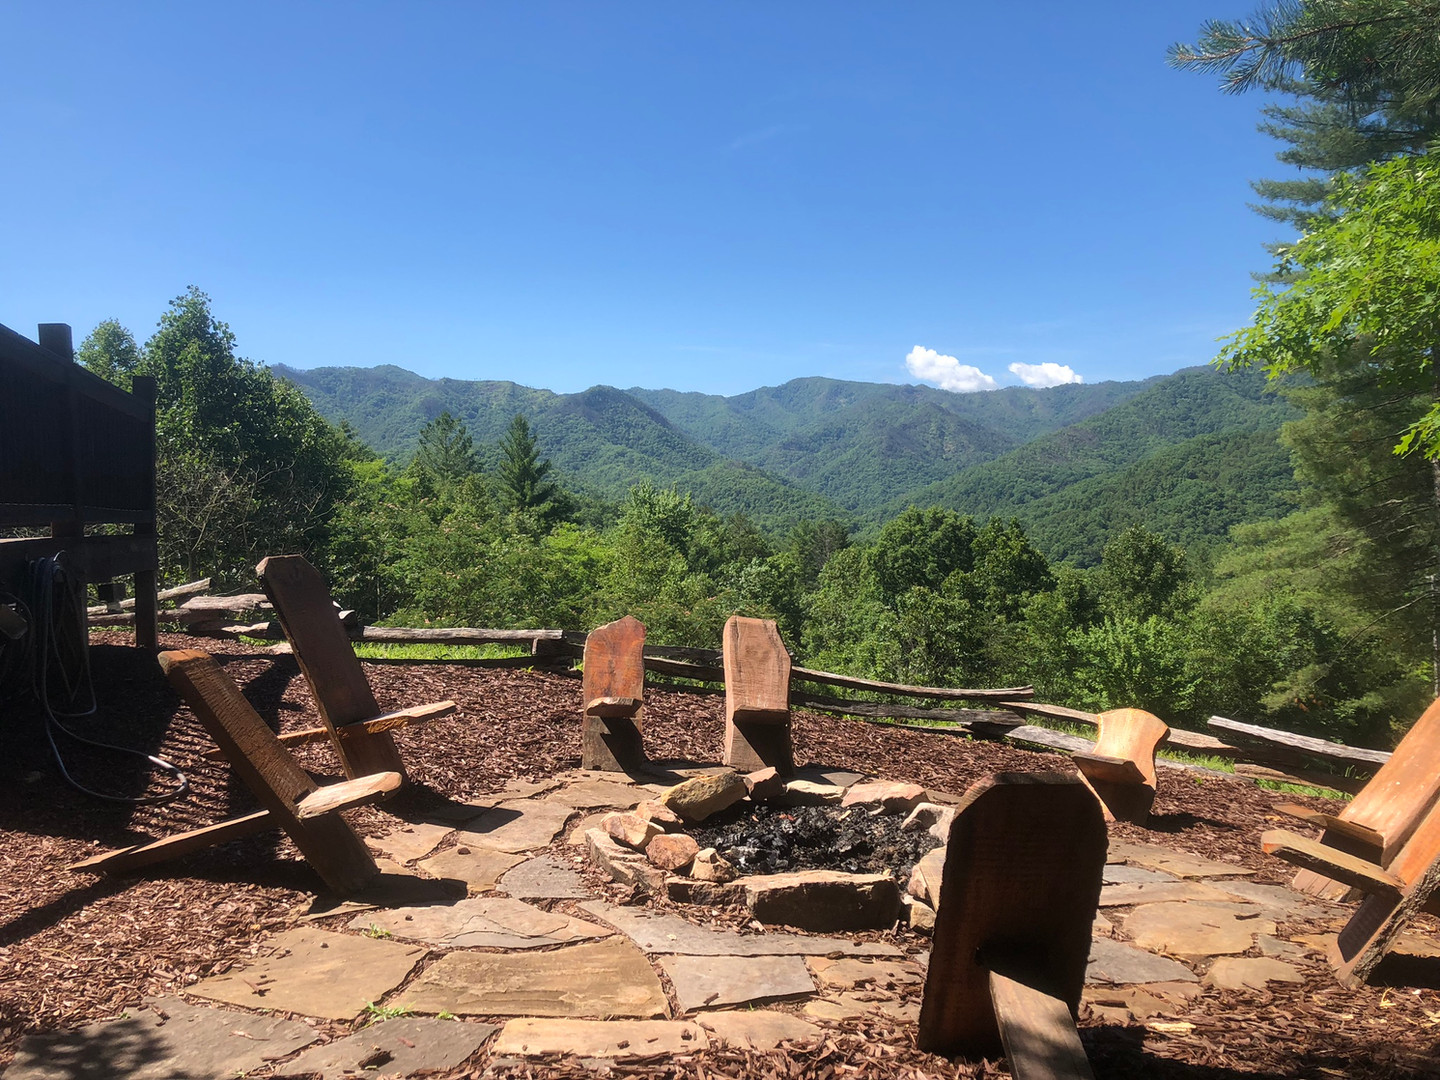 The Nantahala sits closest to the large shared fire pit and is a great place to meet new friends.